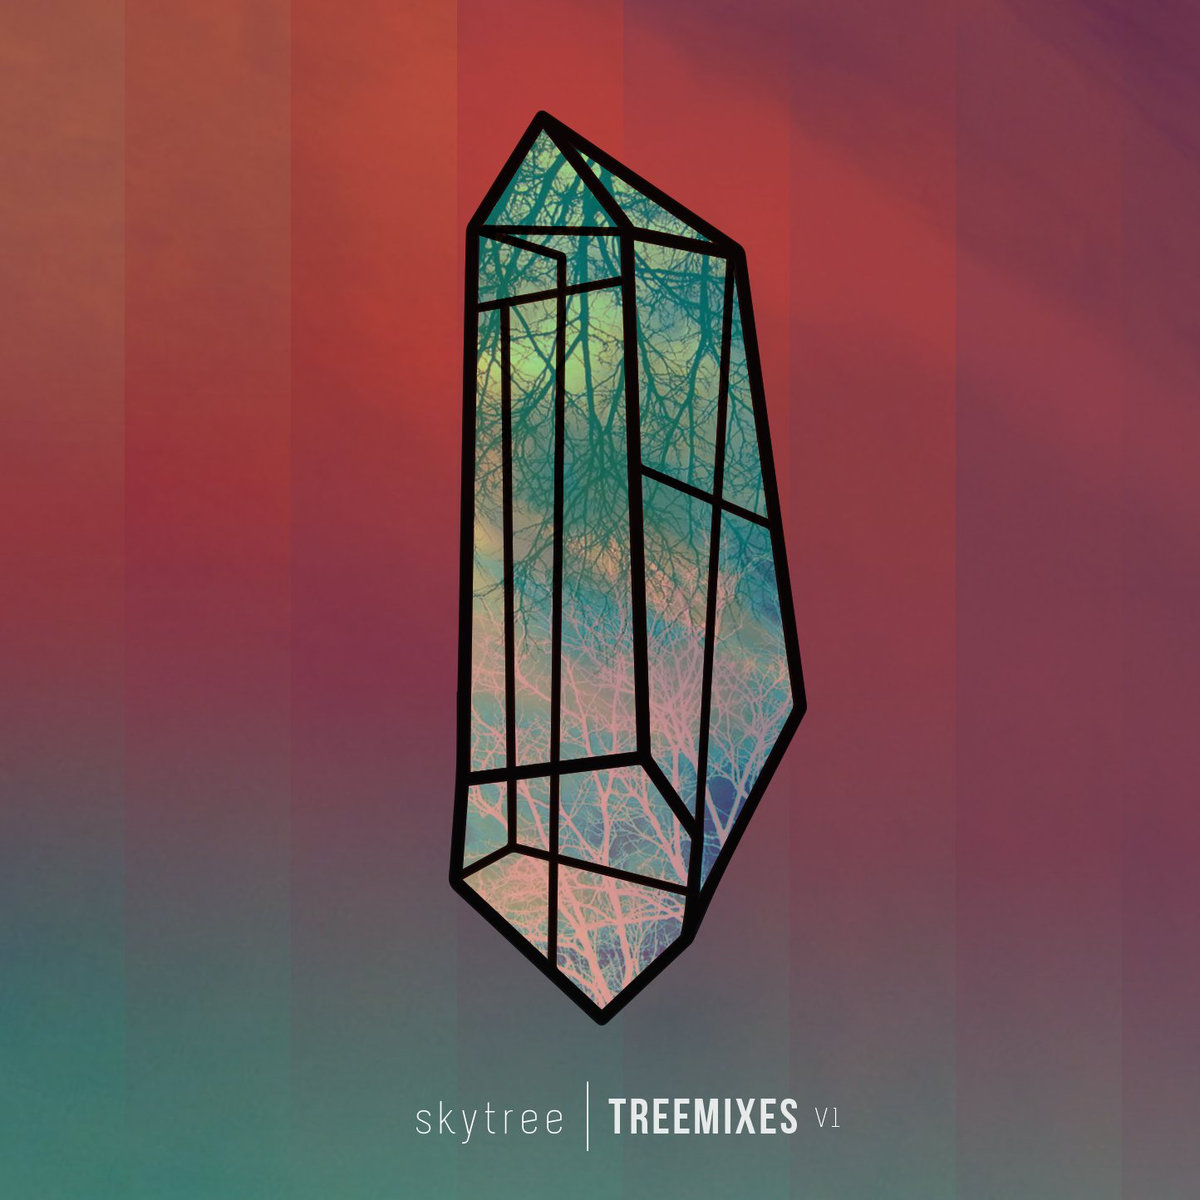 Skytree - Quartz Resonance (Shamanic Technology remix) @ 'Treemixes V1' album (Austin)